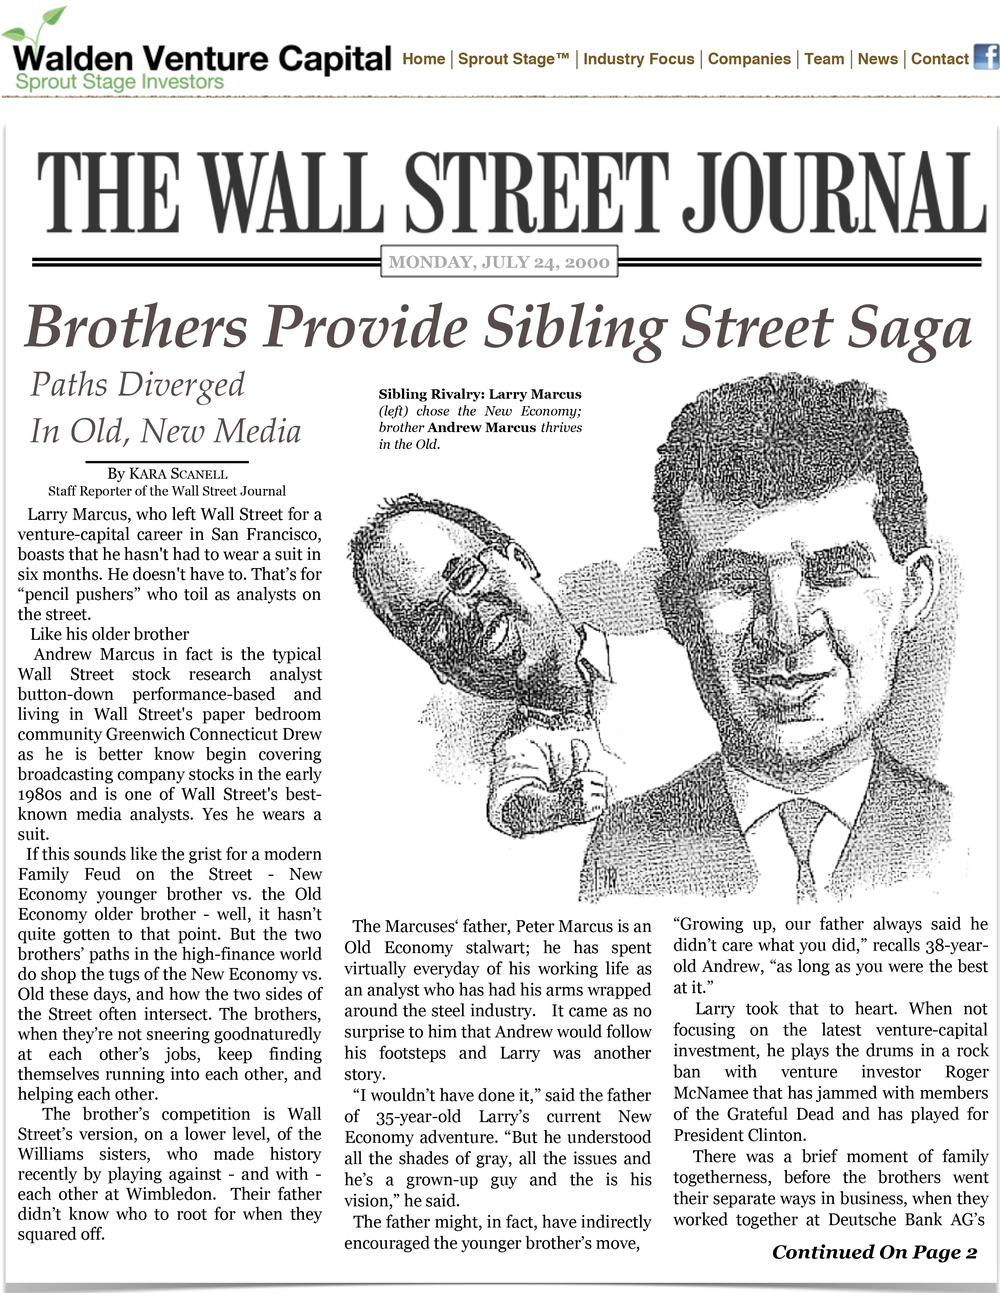 Brothers Provide Sibling Street Saga